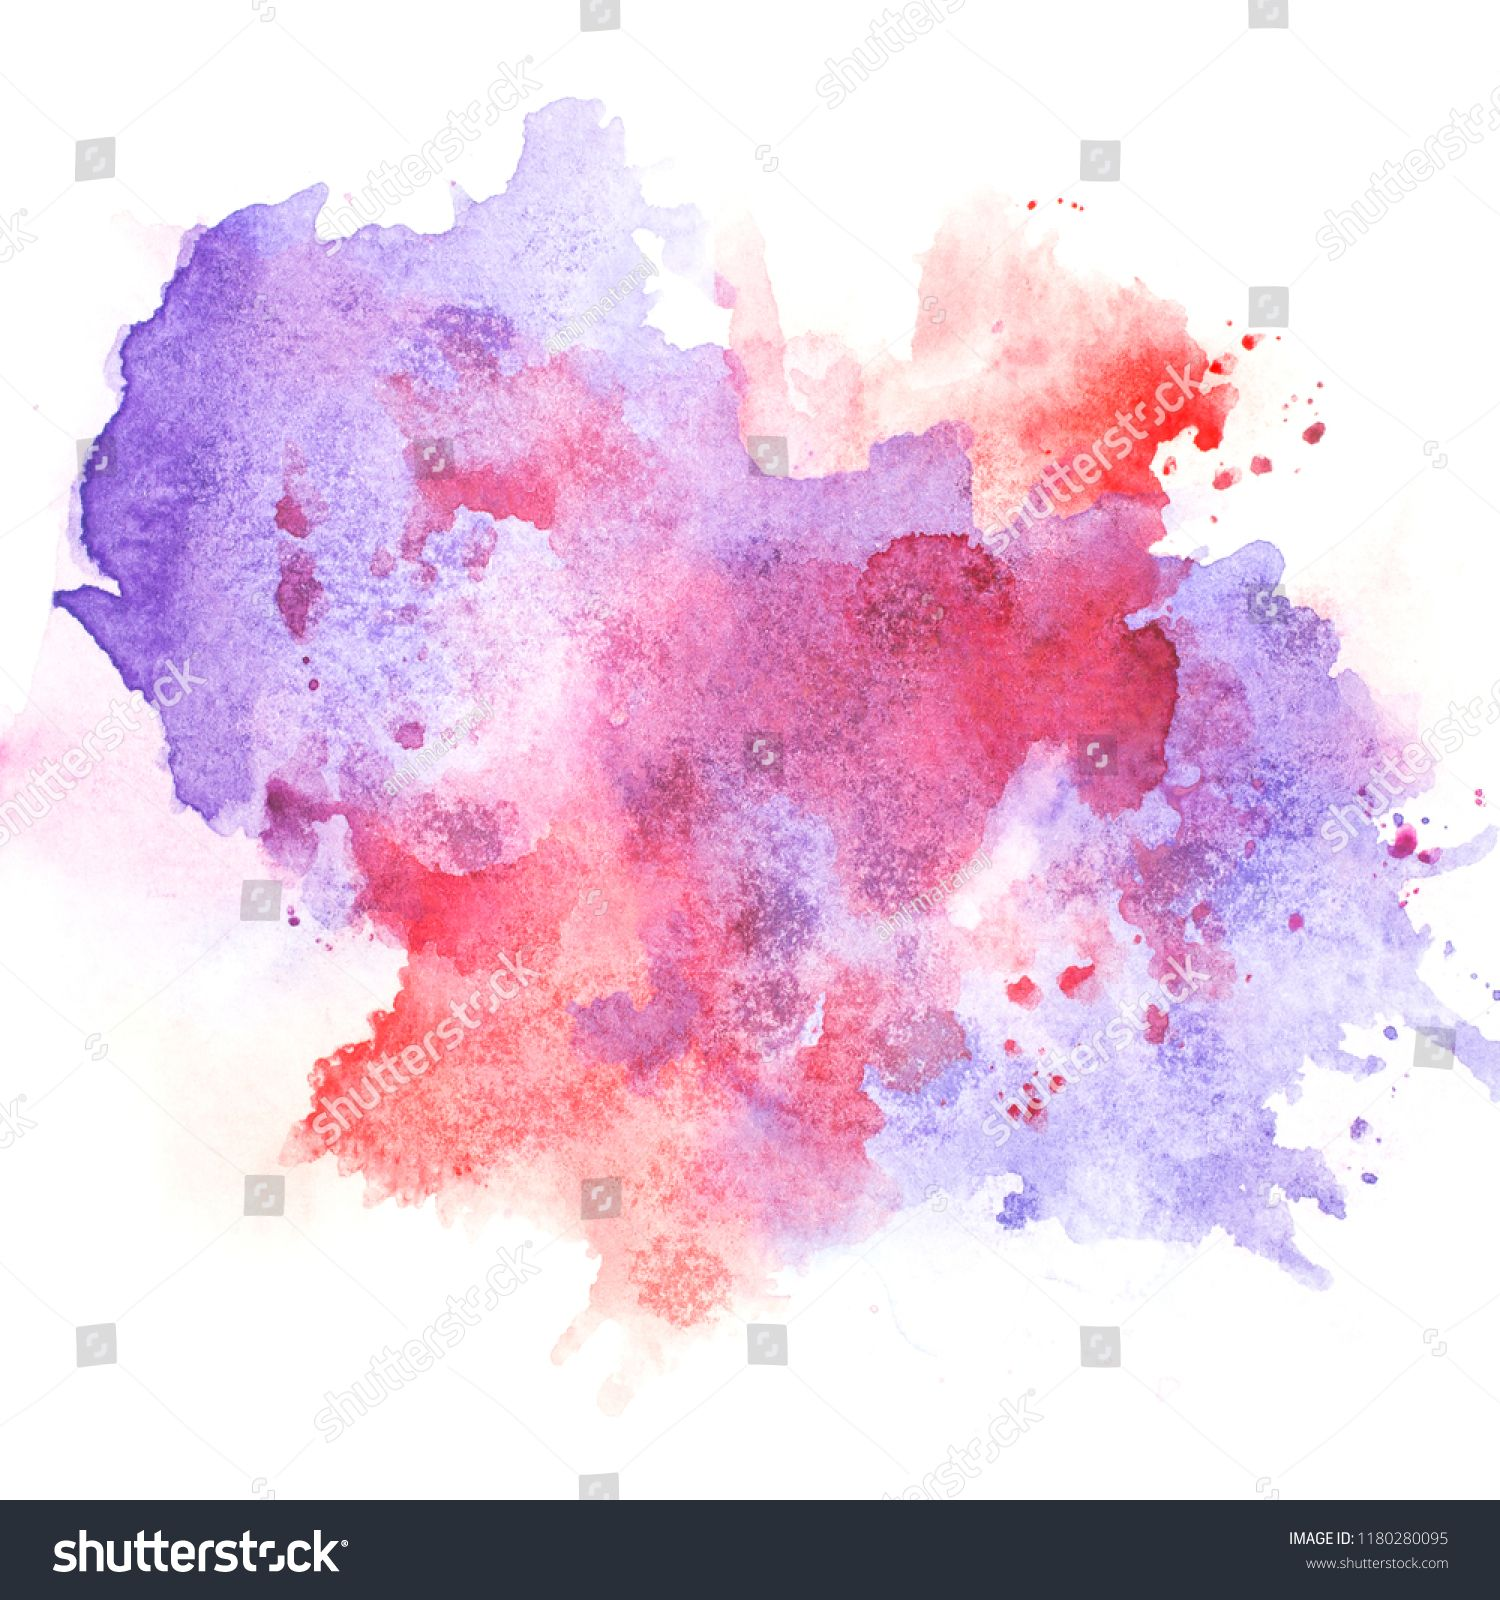 Brush Purple Watercolor Color Shades Space Image Watercolor Purple